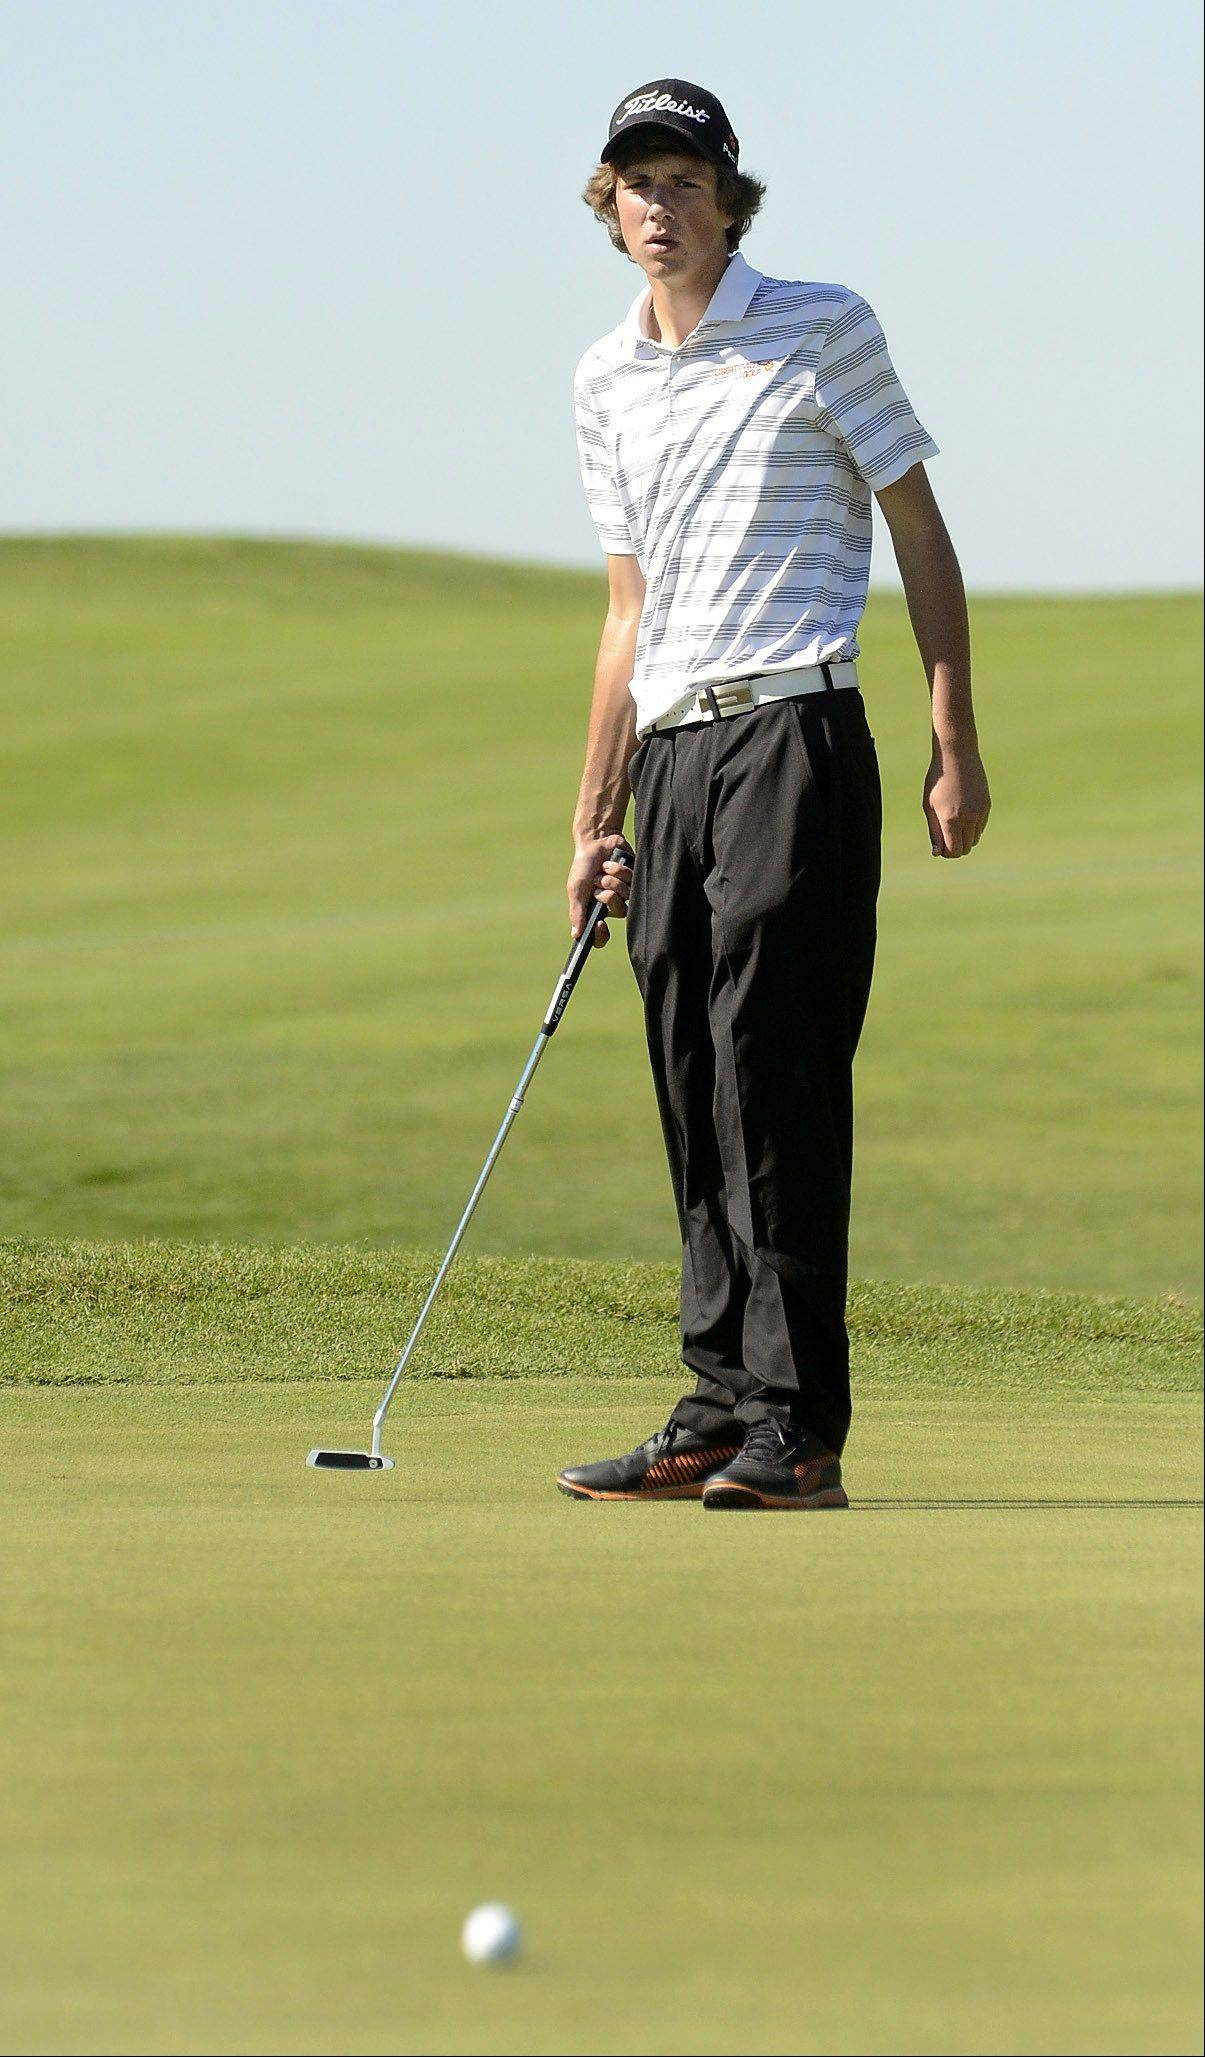 Billy Knutson of Libertyville watches his putt just miss on 13 during the Class 3A Zion-Benton boys golf regional.